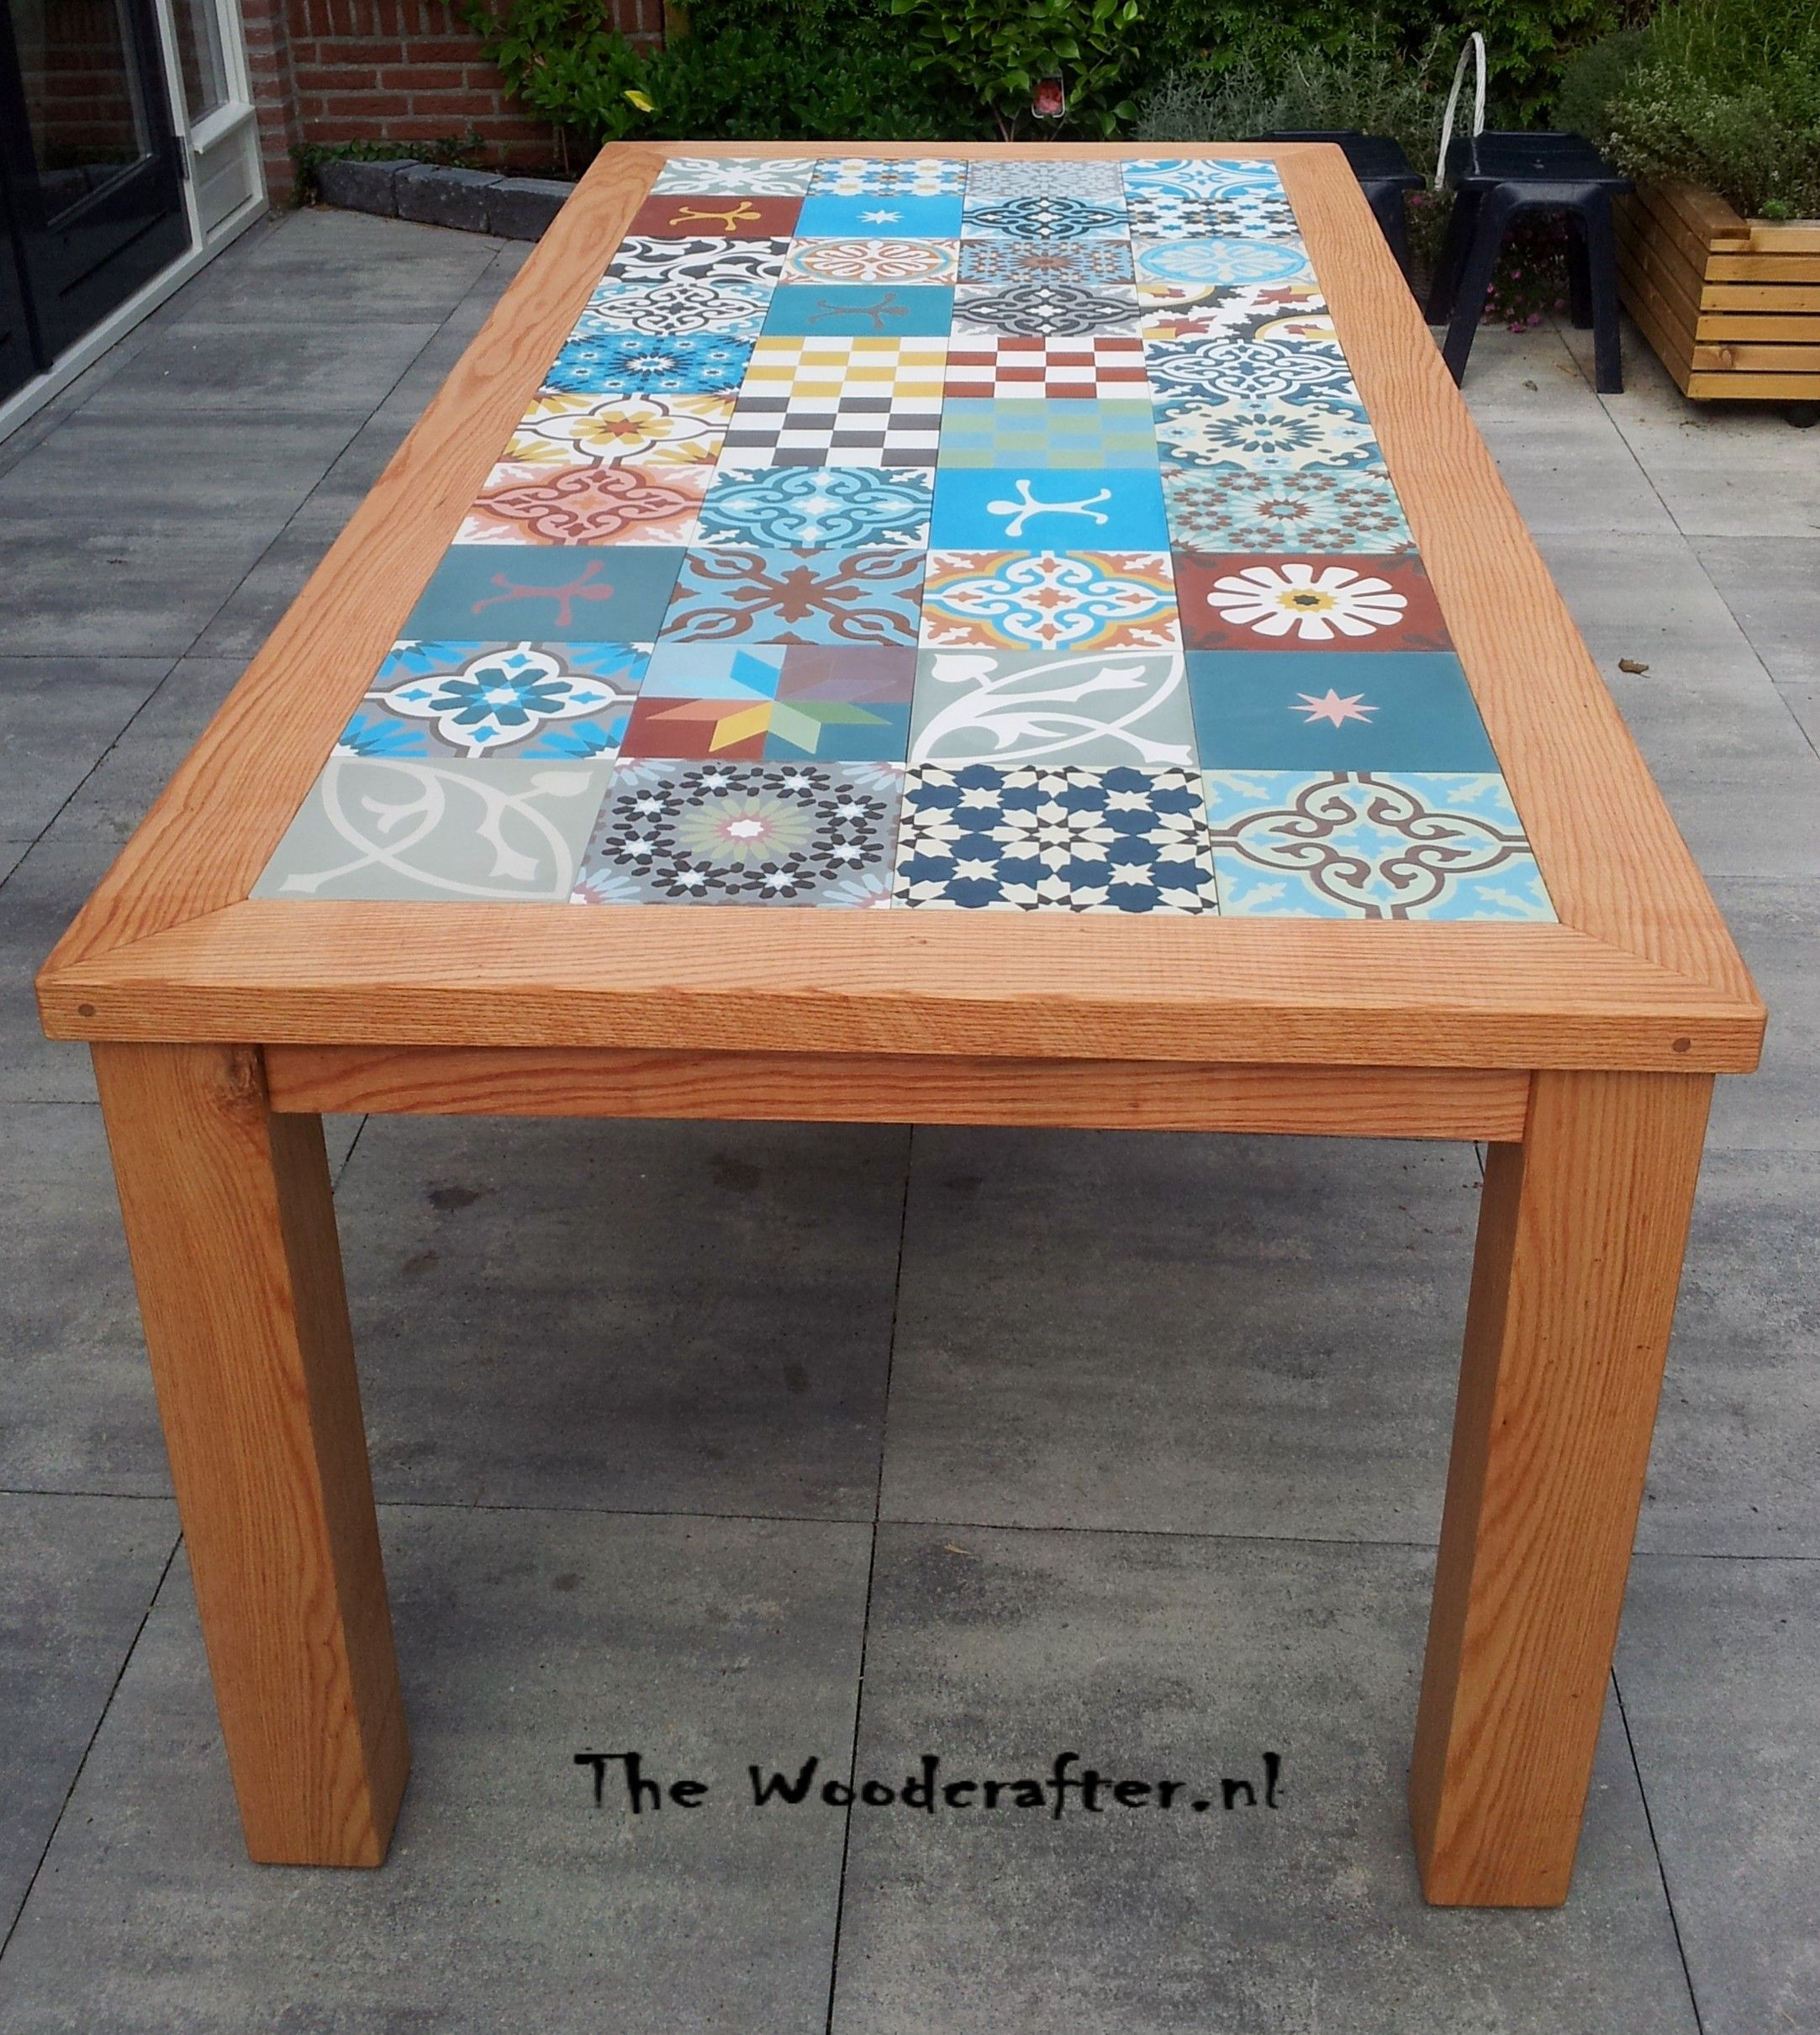 Outdoor Tile Table Top Red American Oak Outdoor Table With A Portugese Tiled Tabletop